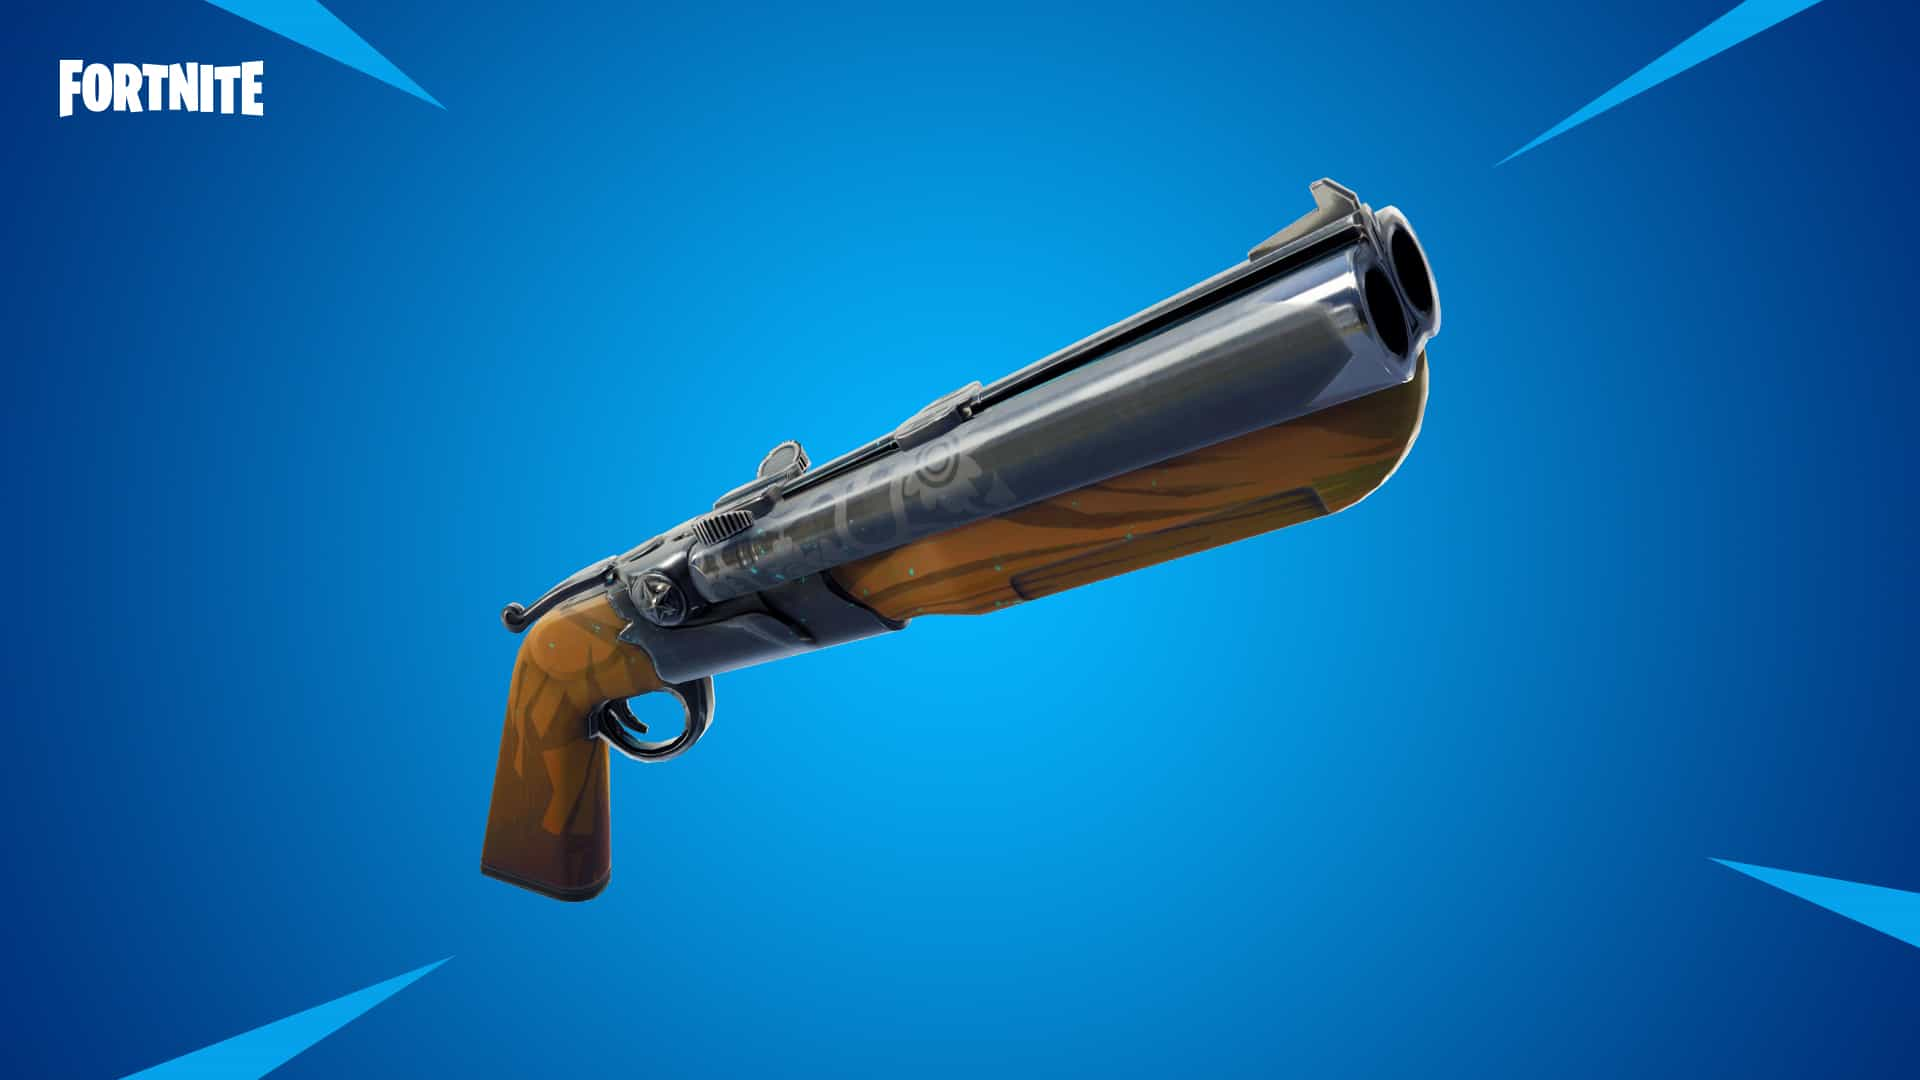 Fortnite double-barrel shotgun